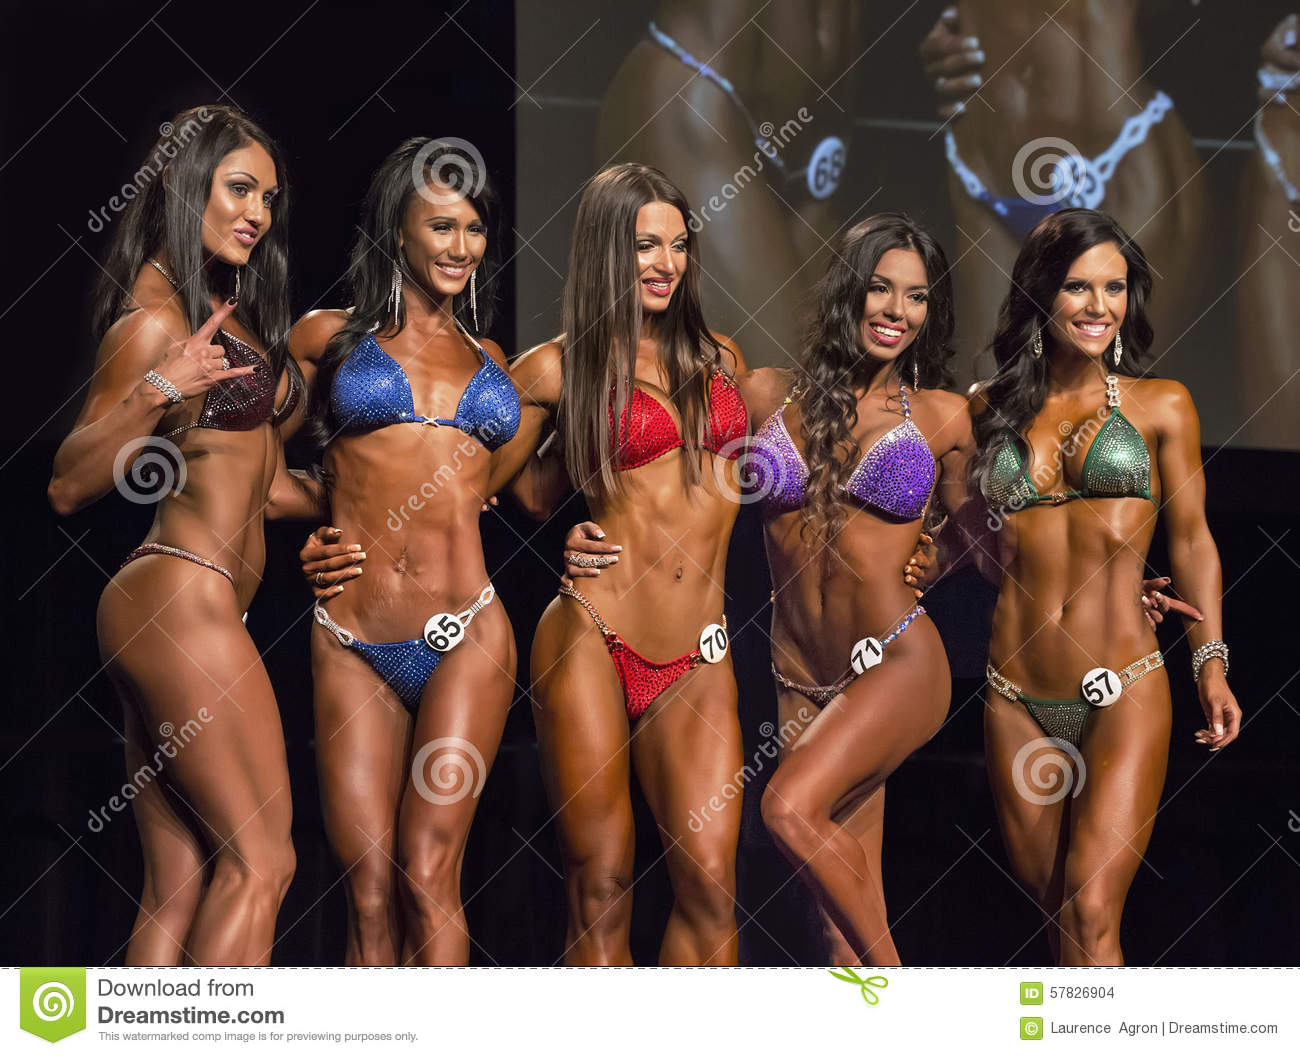 Pro Bikini Awards Ceremony Top Strike Pose Ifbb Vancouver Expo Competition July Event Was Held Peruvian Girl